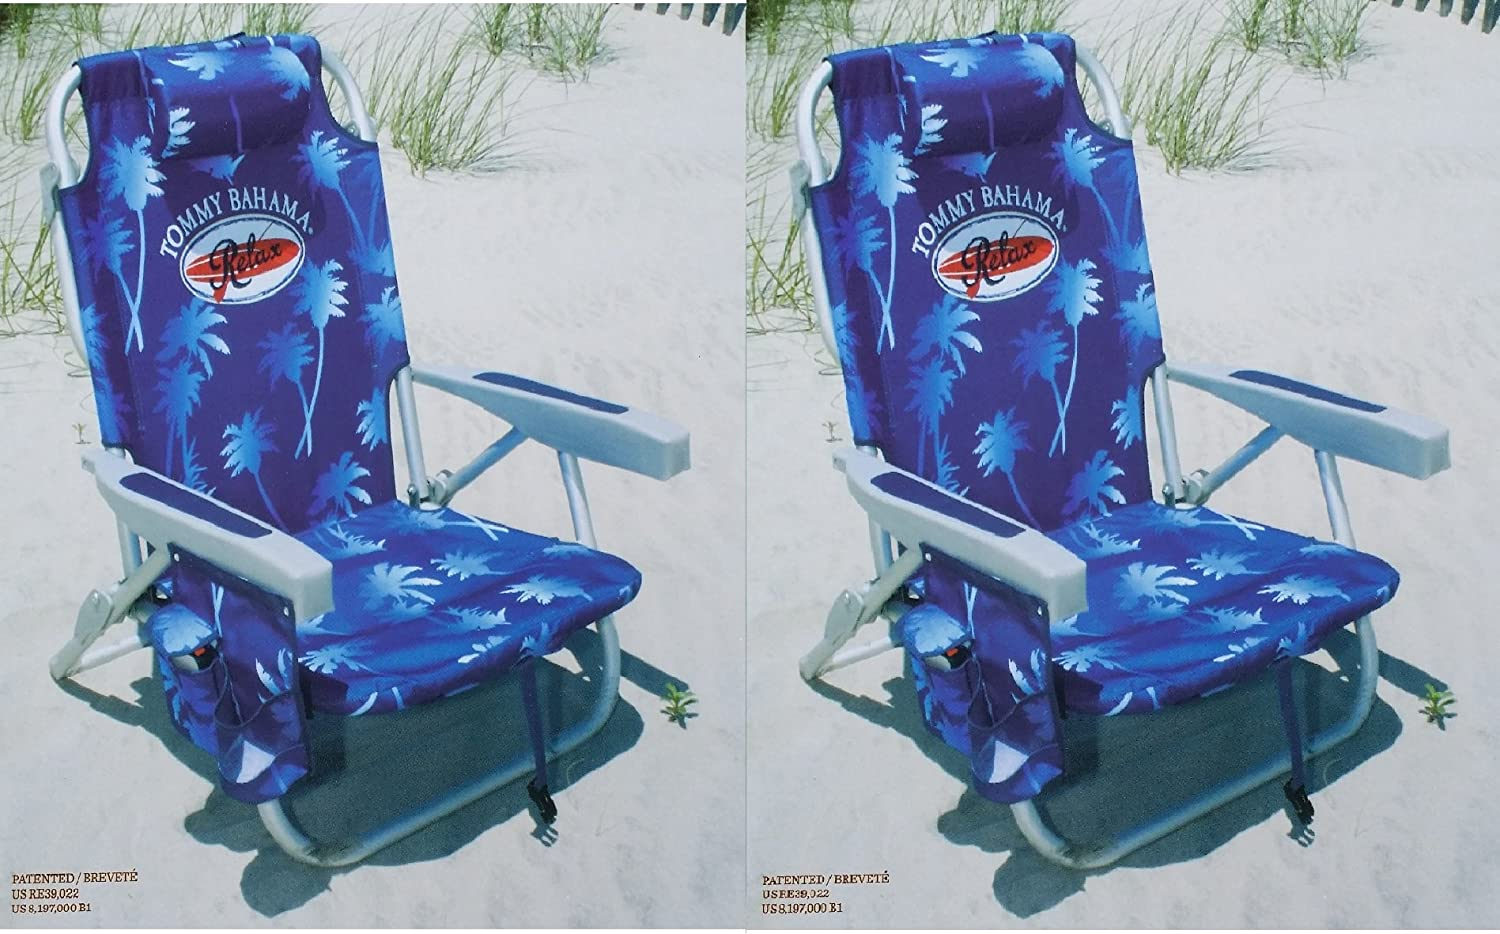 Amazon.com  2 Tommy Bahama 2015 Backpack Cooler Chairs with Storage Pouch and Towel Bar- blue  Sports u0026 Outdoors & Amazon.com : 2 Tommy Bahama 2015 Backpack Cooler Chairs with ... islam-shia.org